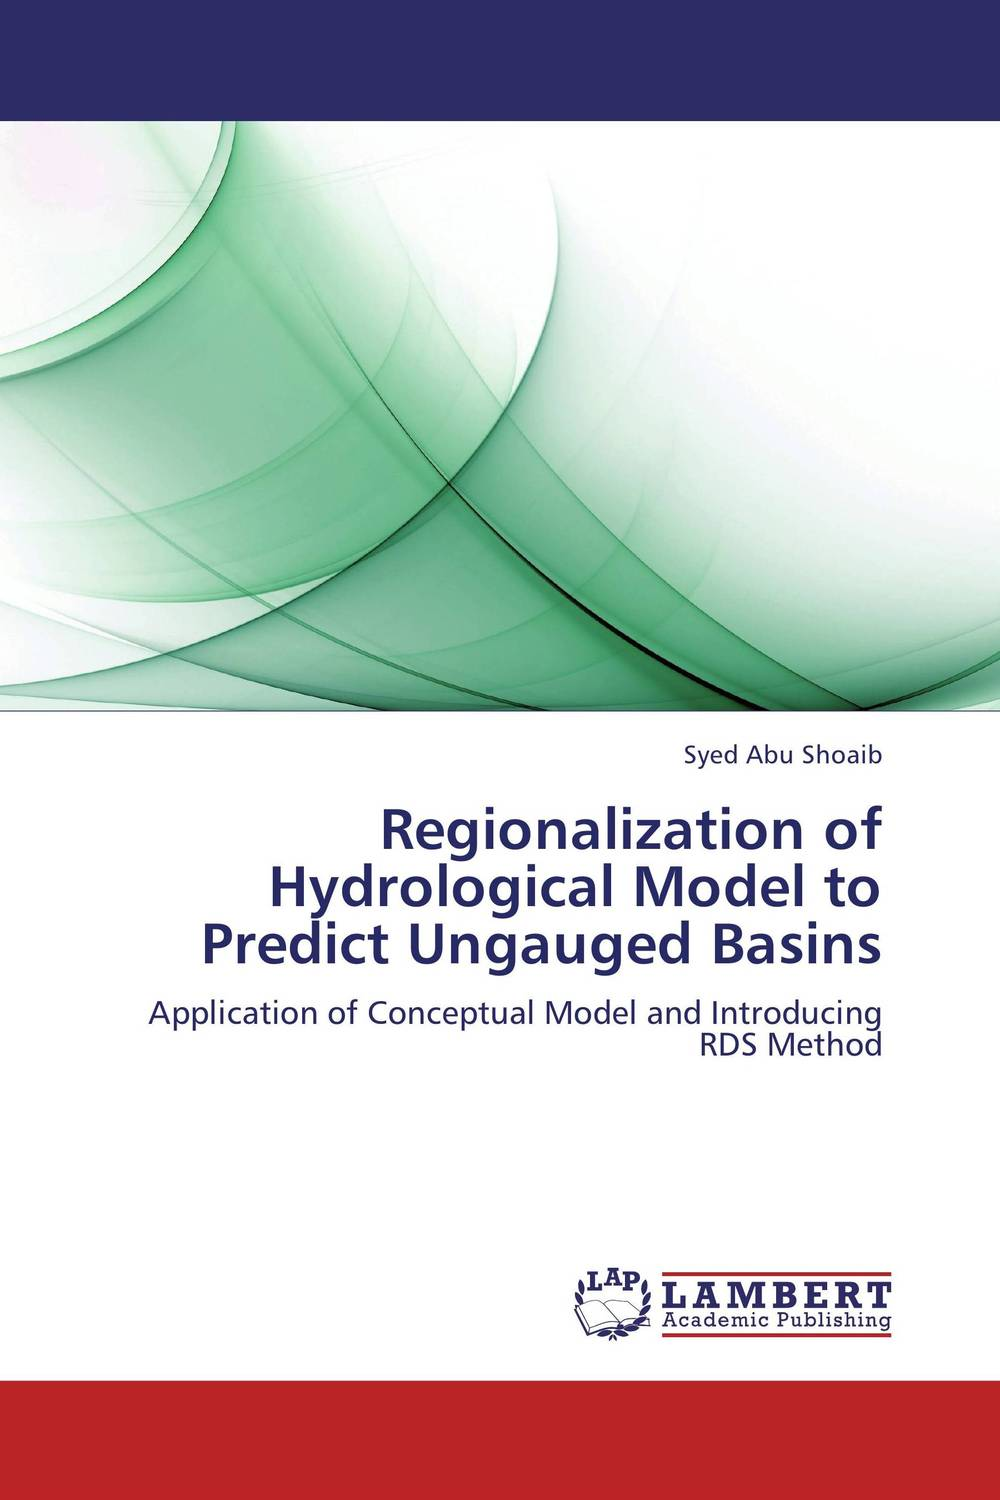 Regionalization of Hydrological Model to Predict Ungauged Basins harsimranjit gill and ajmer singh selection of parameter 'r' in rc5 algorithm